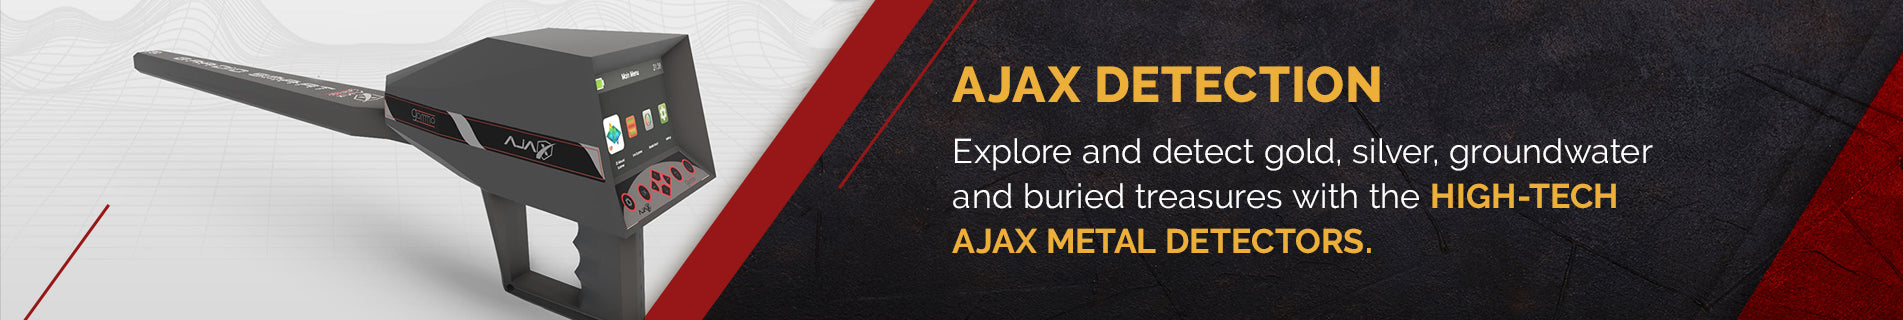 AJAX Detection Metal Detectors| Free US Shipping | Secure Payment